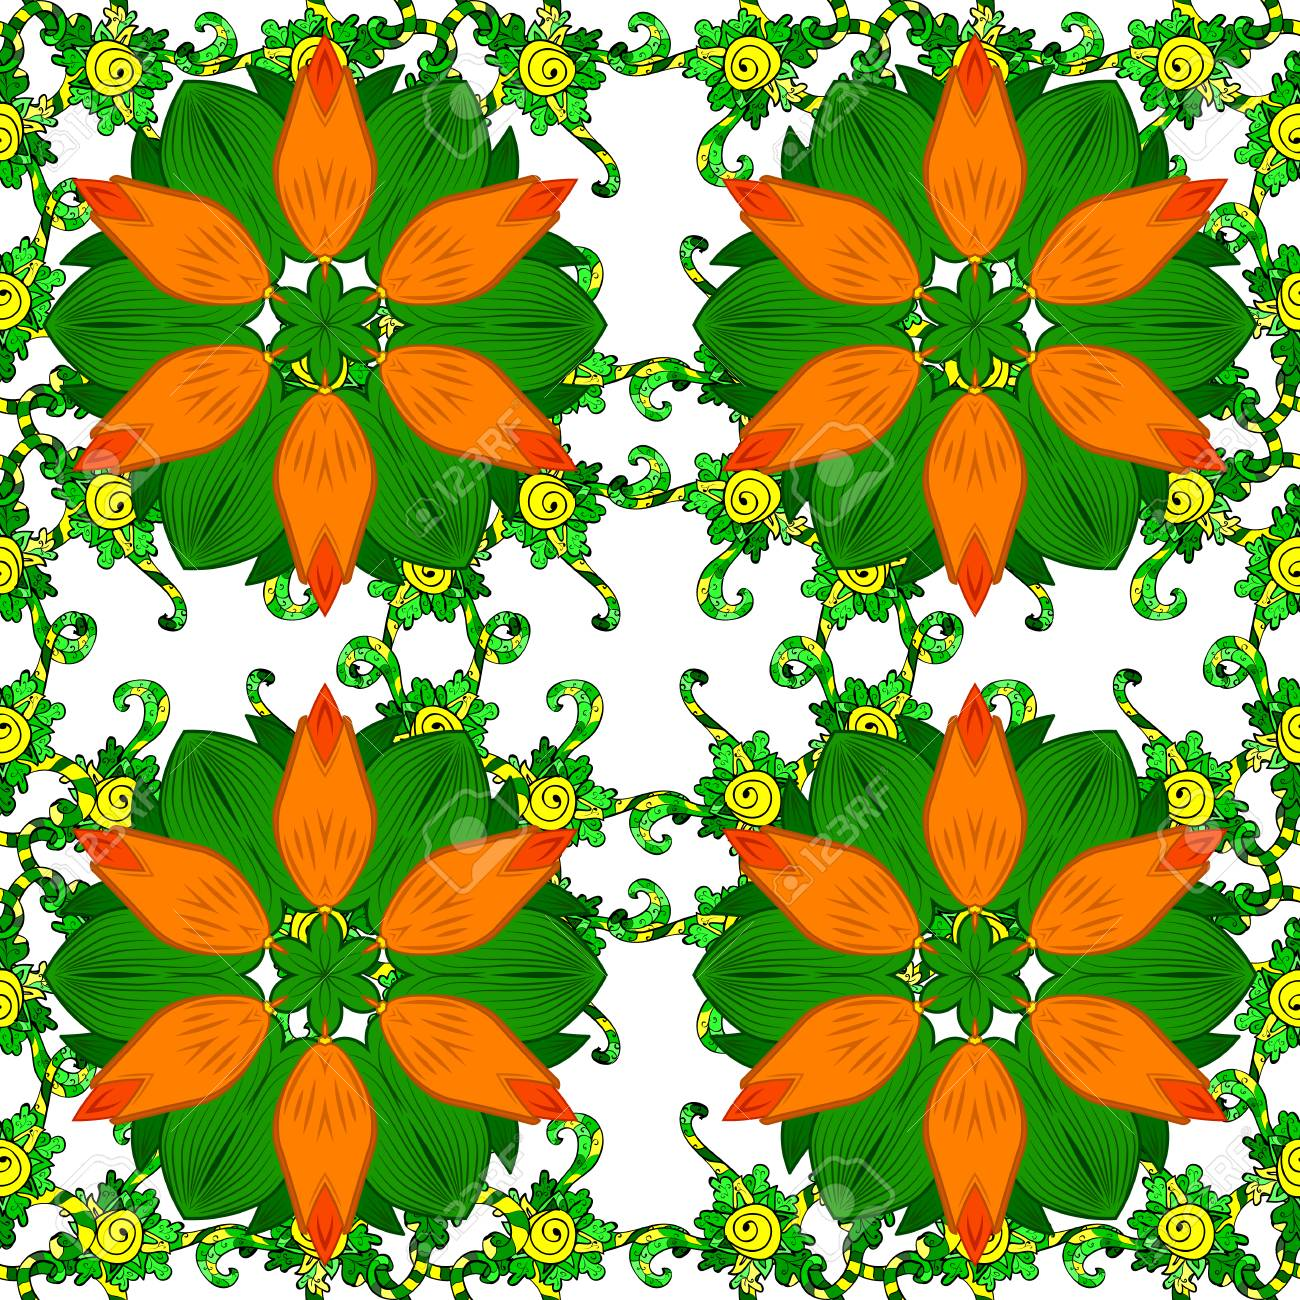 Seamless pattern with spring flowers cover background orange seamless pattern with spring flowers cover background orange and green colors vector mightylinksfo